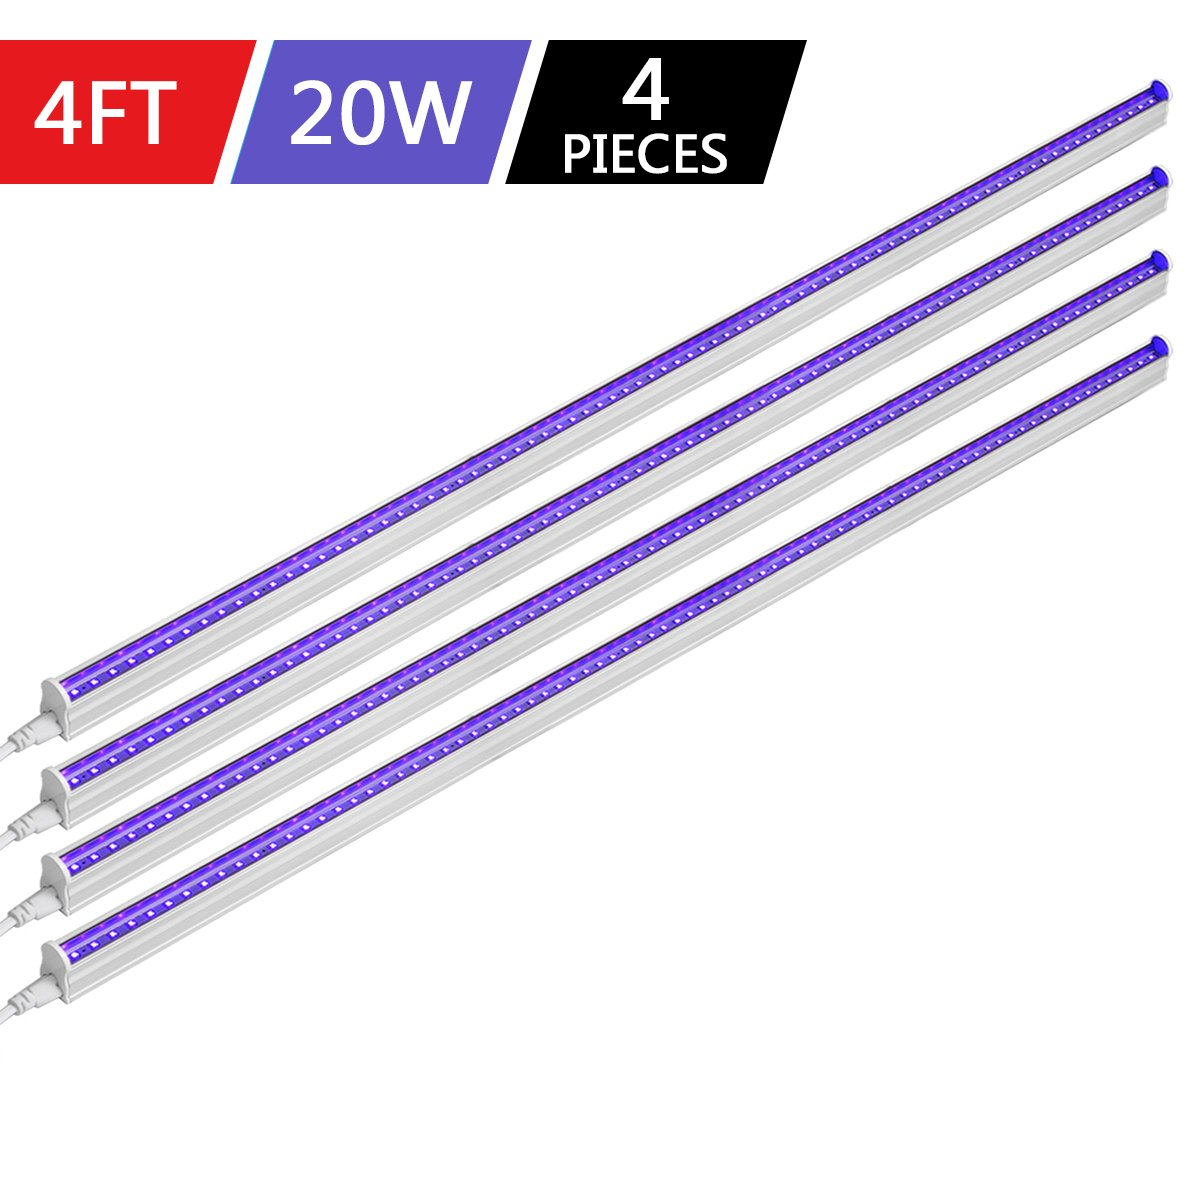 Byingo UV Black Light Fixtures 4ft 20W LED T5 Integrated Single Fixture Extendable Tube Bulb Blacklight for DJ Stage Dorm Party Club, Corded Included Built-in ON/Off Switch Plug and Play, 4-Pack